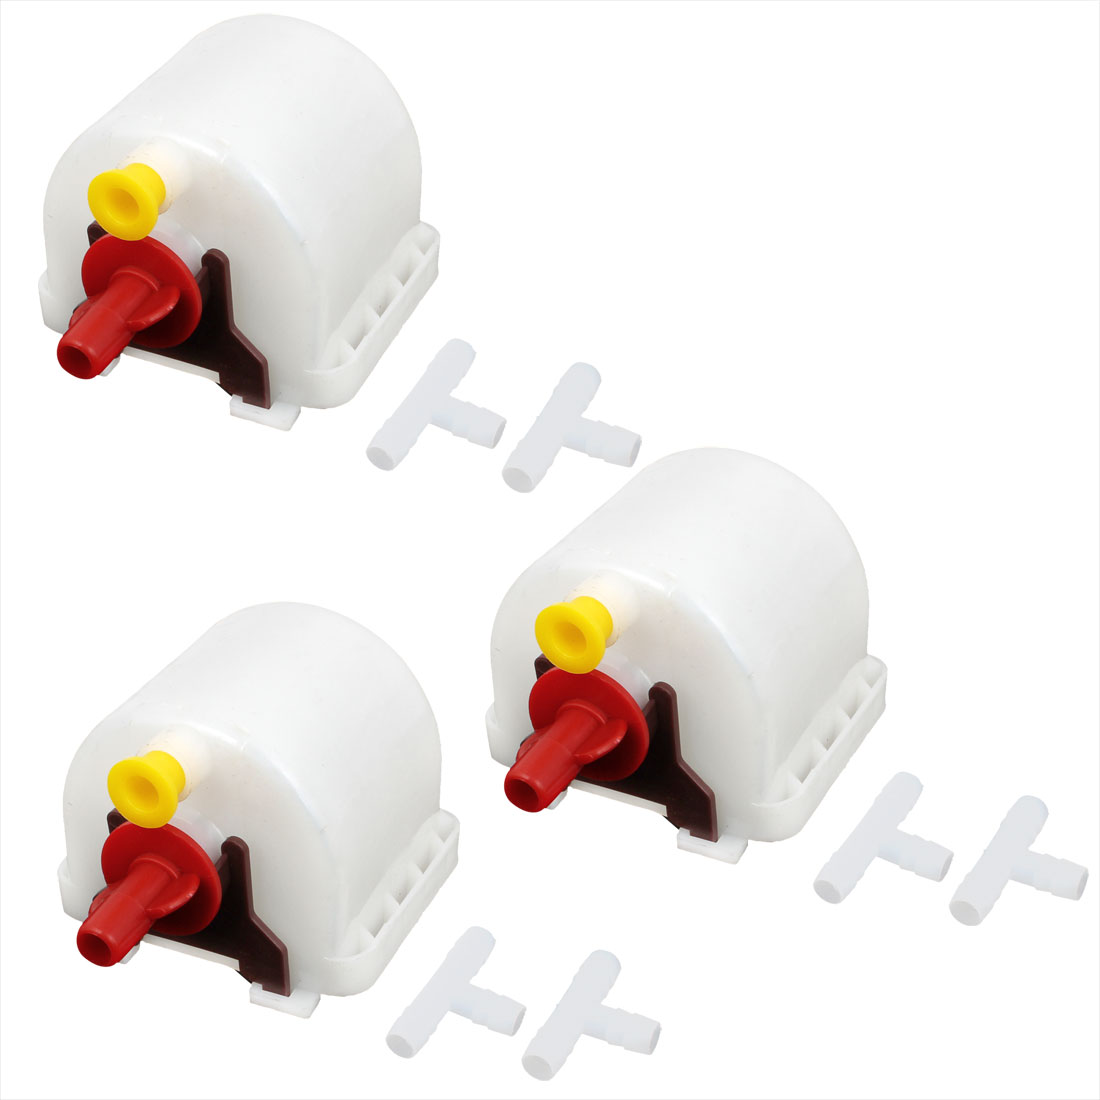 3 Pcs Red White Plastic Automatic Fount Waterer Feeder Drinker for Pet Rabbit Marten